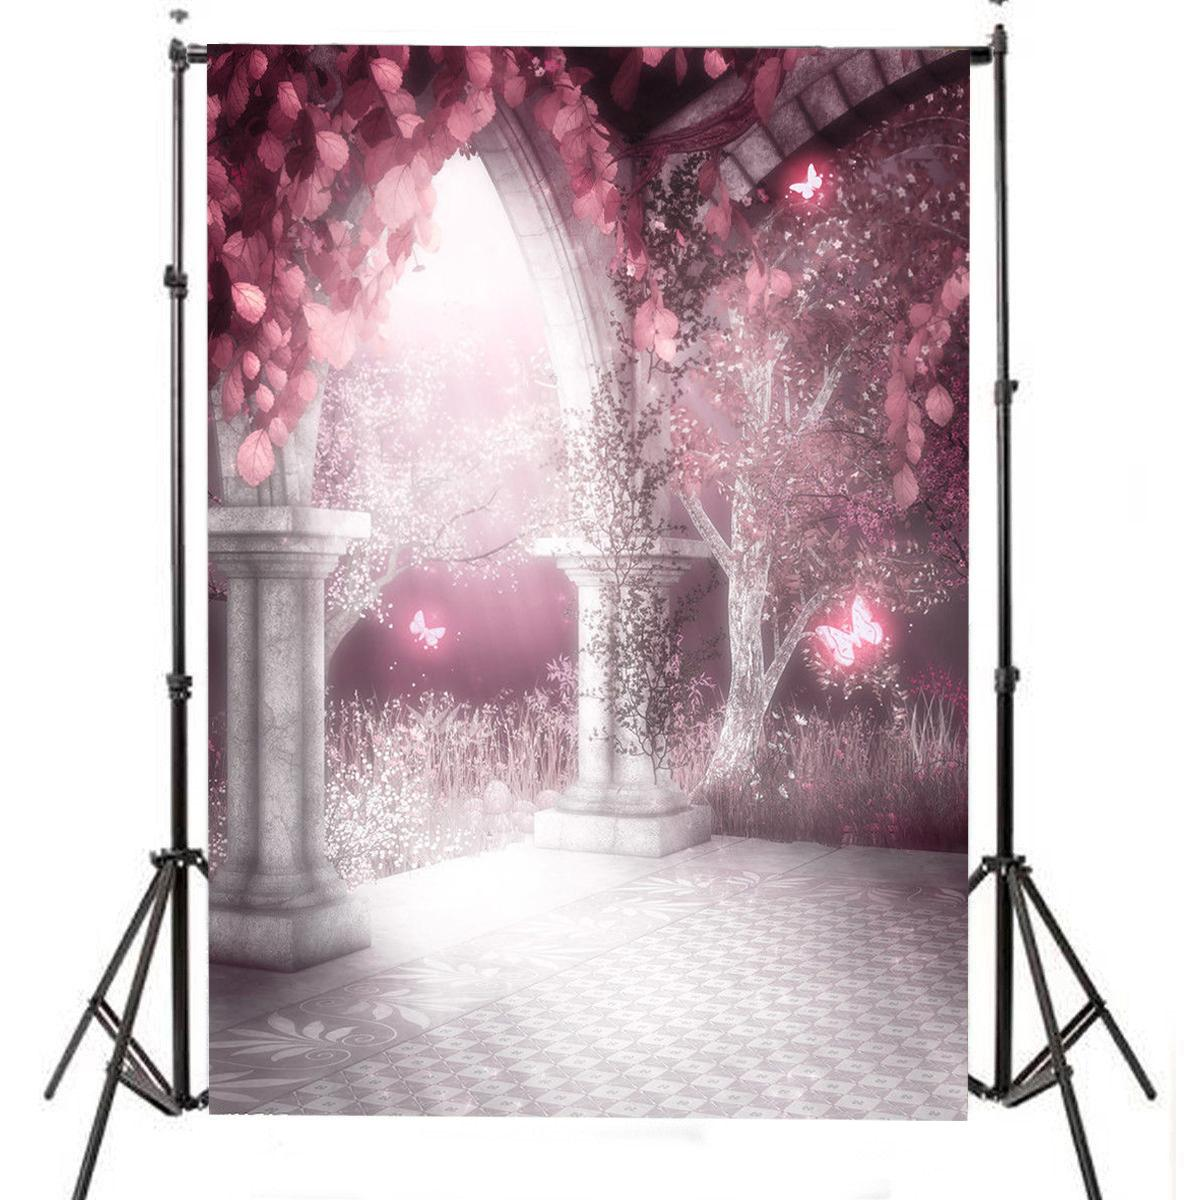 7X5ft Romantic Scene Photography Backdrop Studio Photo Background Photo Props Wedding Valentine's Day Party 5 x 7 ft pink love hearts print photo backdrop for wedding party portrait photography studio background s 1305